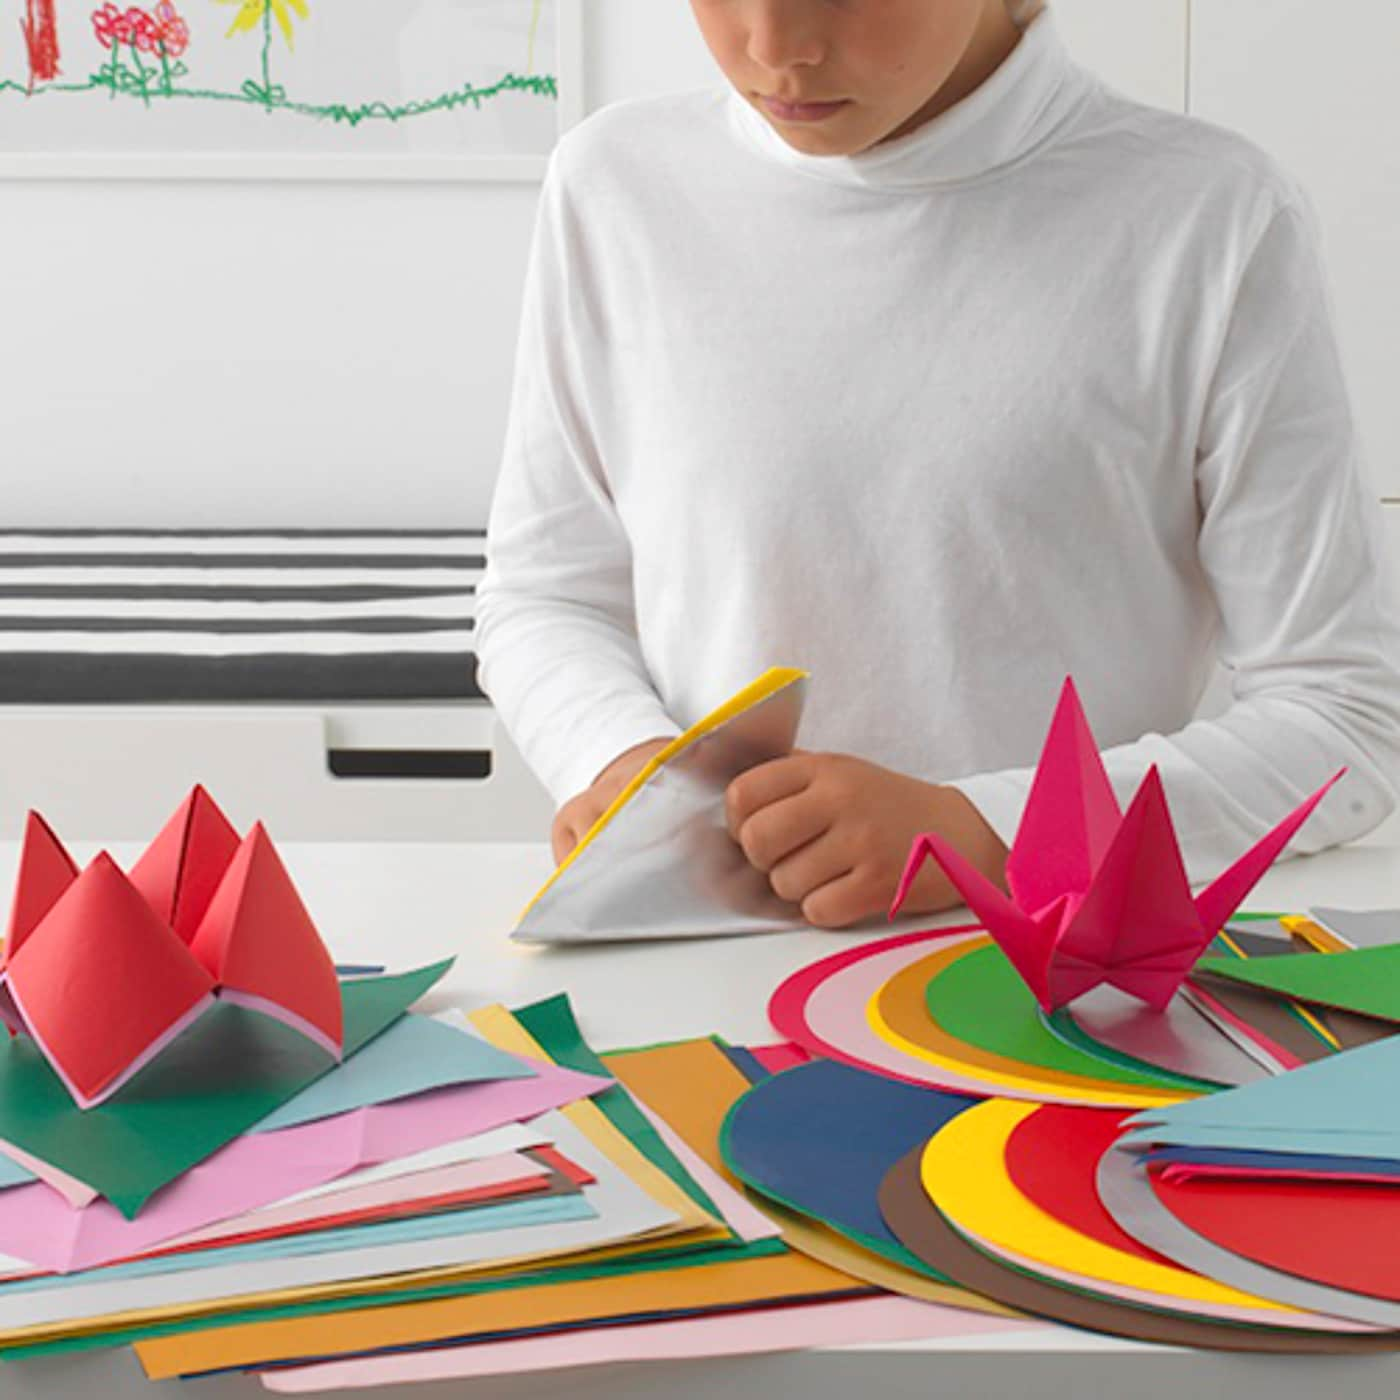 Lucky Paper Stars · An Origami Shape · Papercraft on Cut Out + Keep ·  Creation by | 1400x1400